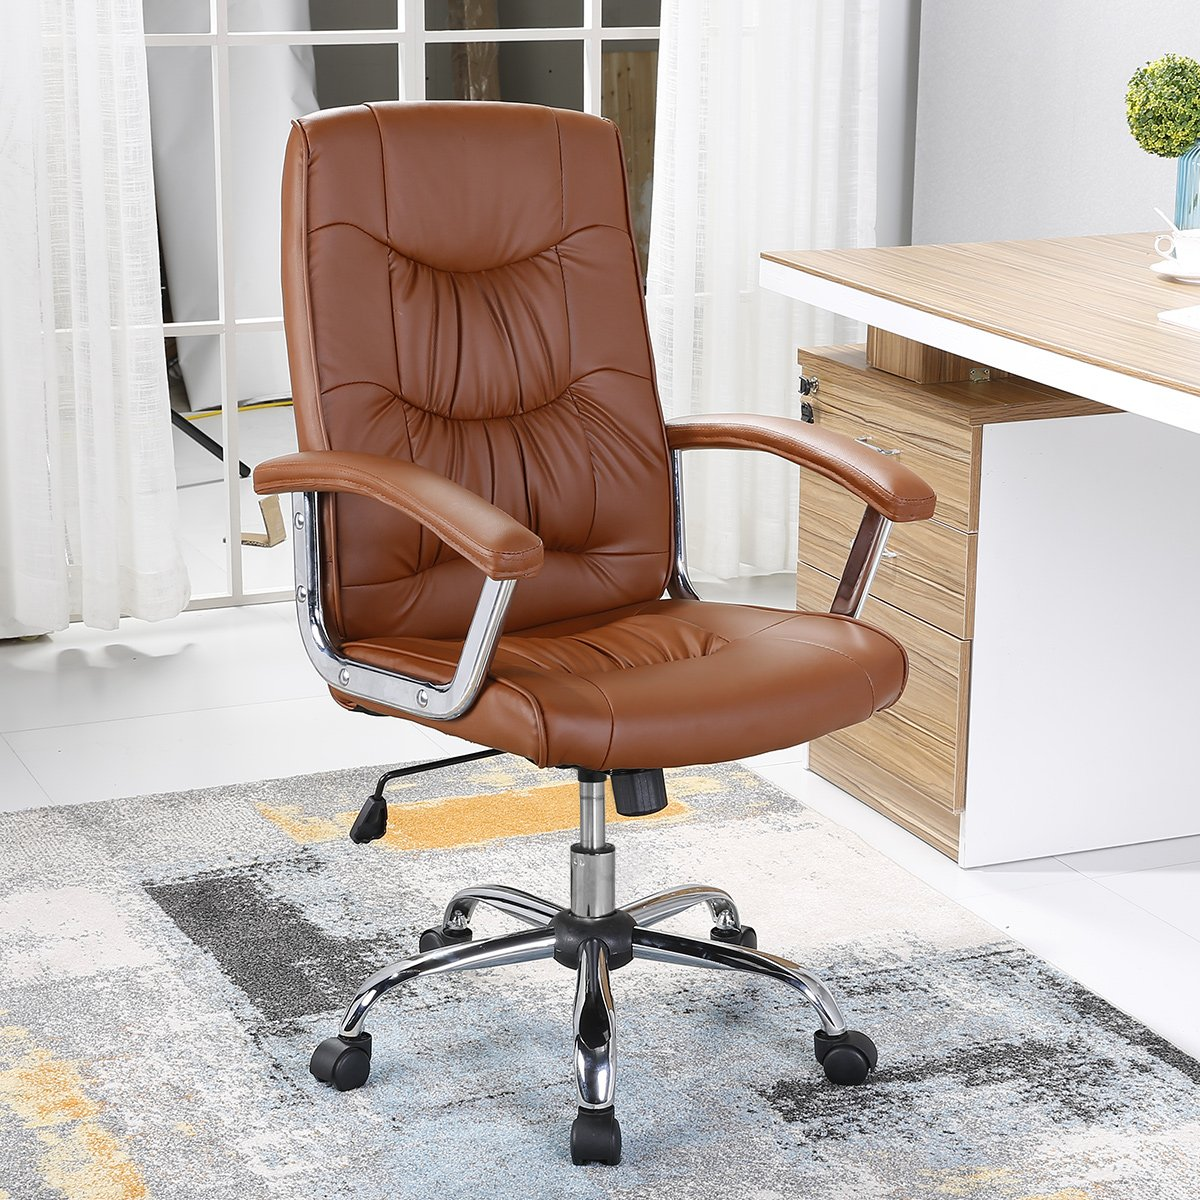 SeatingPlus High Back Desk Office Chair Ergonomic Swivel Home Computer Chair with Armrest, Back Support for Working, Brown